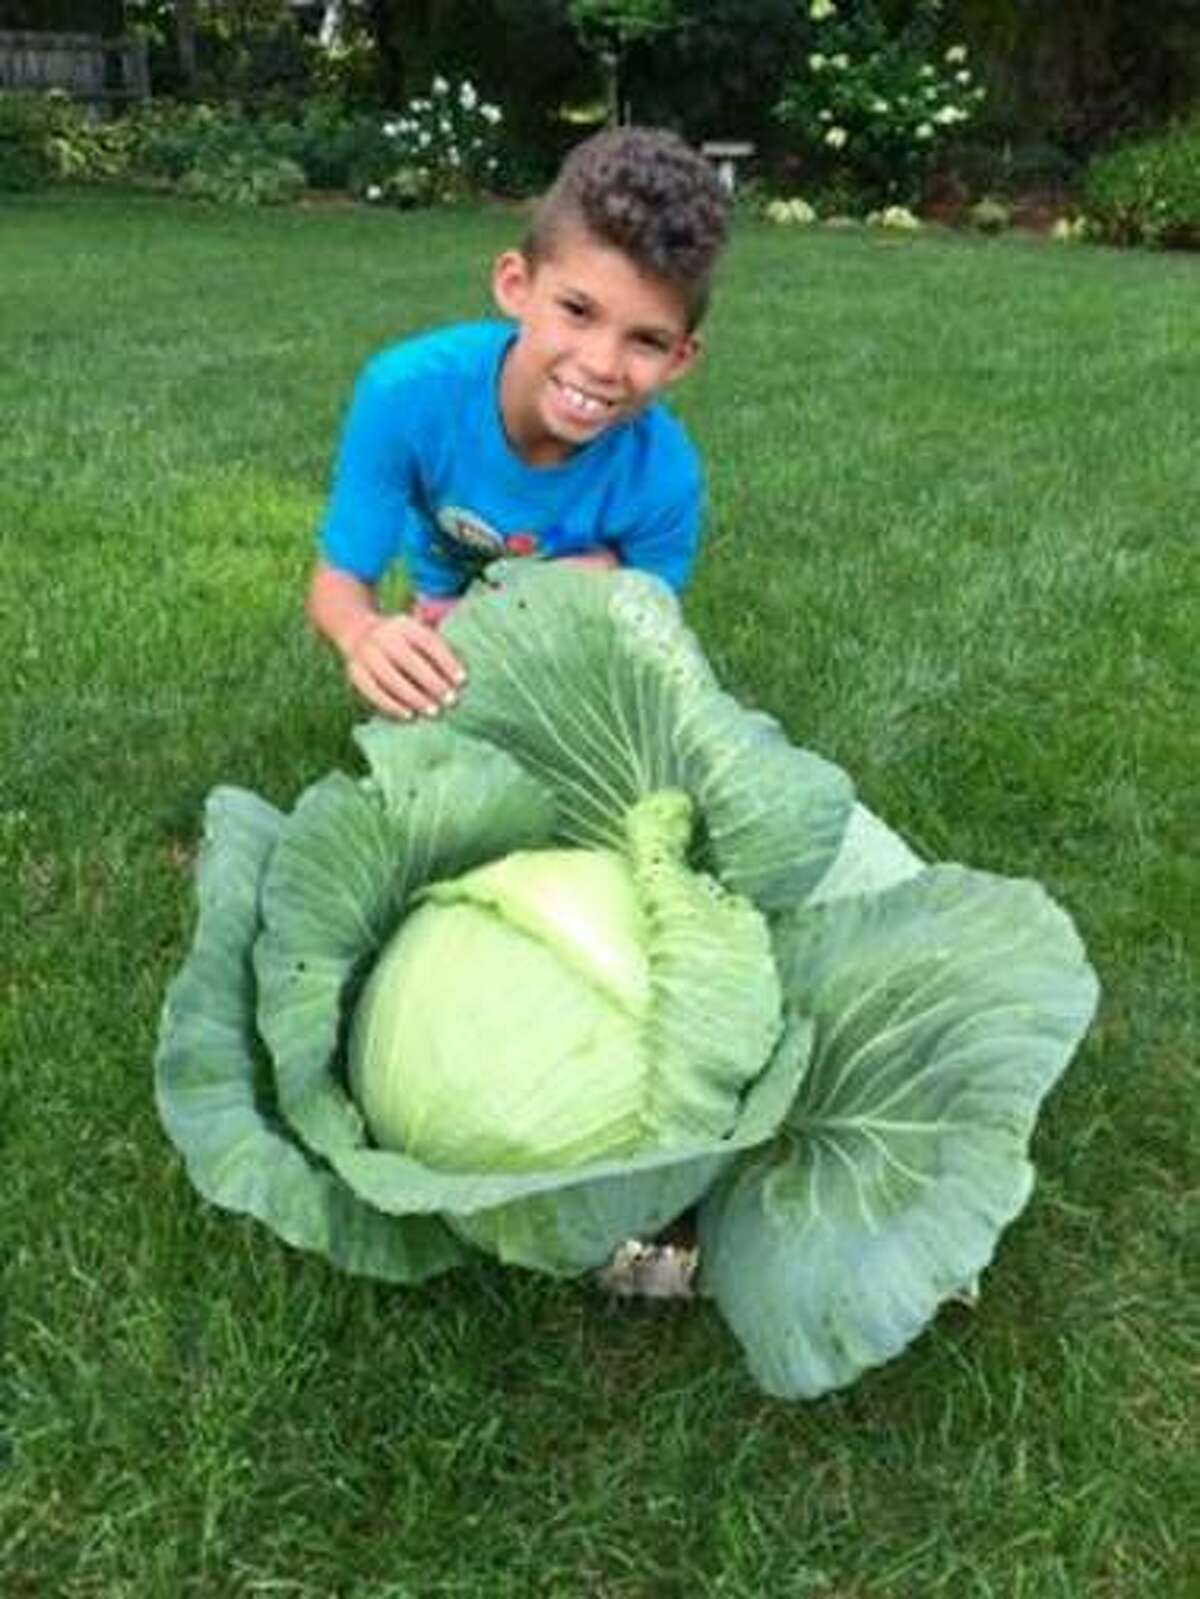 Louis Hawkins III, a student at Thomas W. Mahan Elementary School, grew a beautiful, HUGE cabbage (13 lbs!). Louis will receive a $1,000 saving bond towards education from Bonnie Plants.